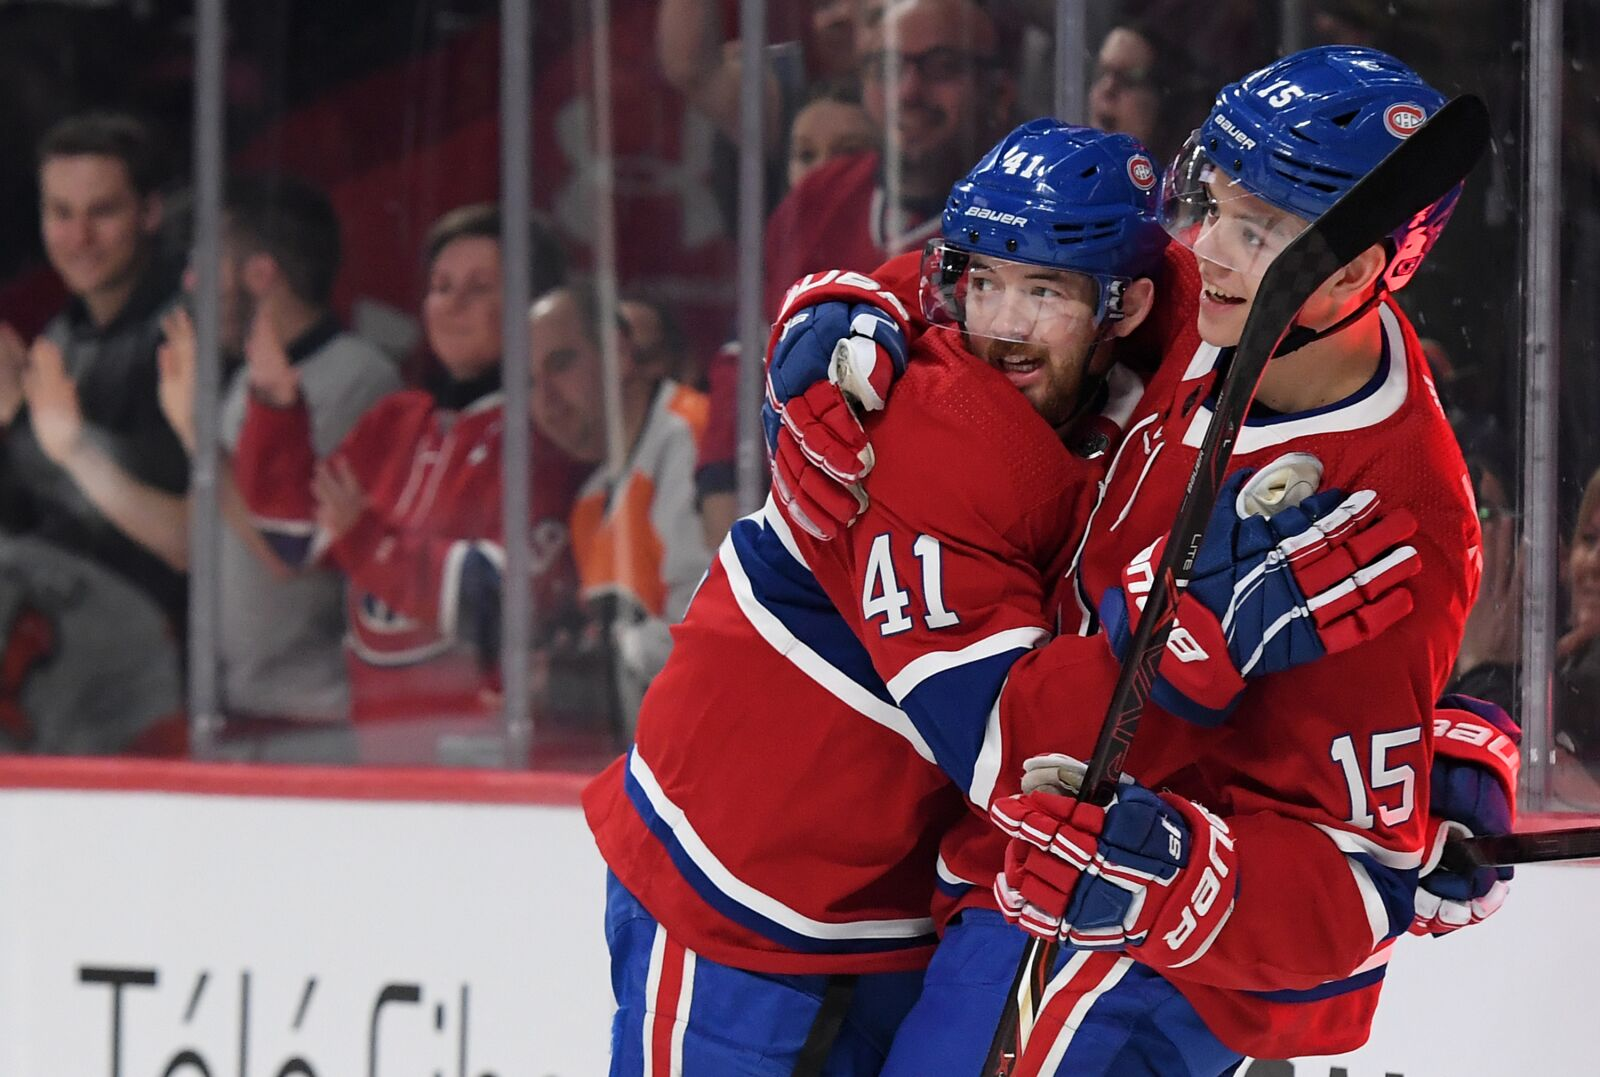 The Montreal Canadiens are going backwards with Jesperi Kotkaniemi